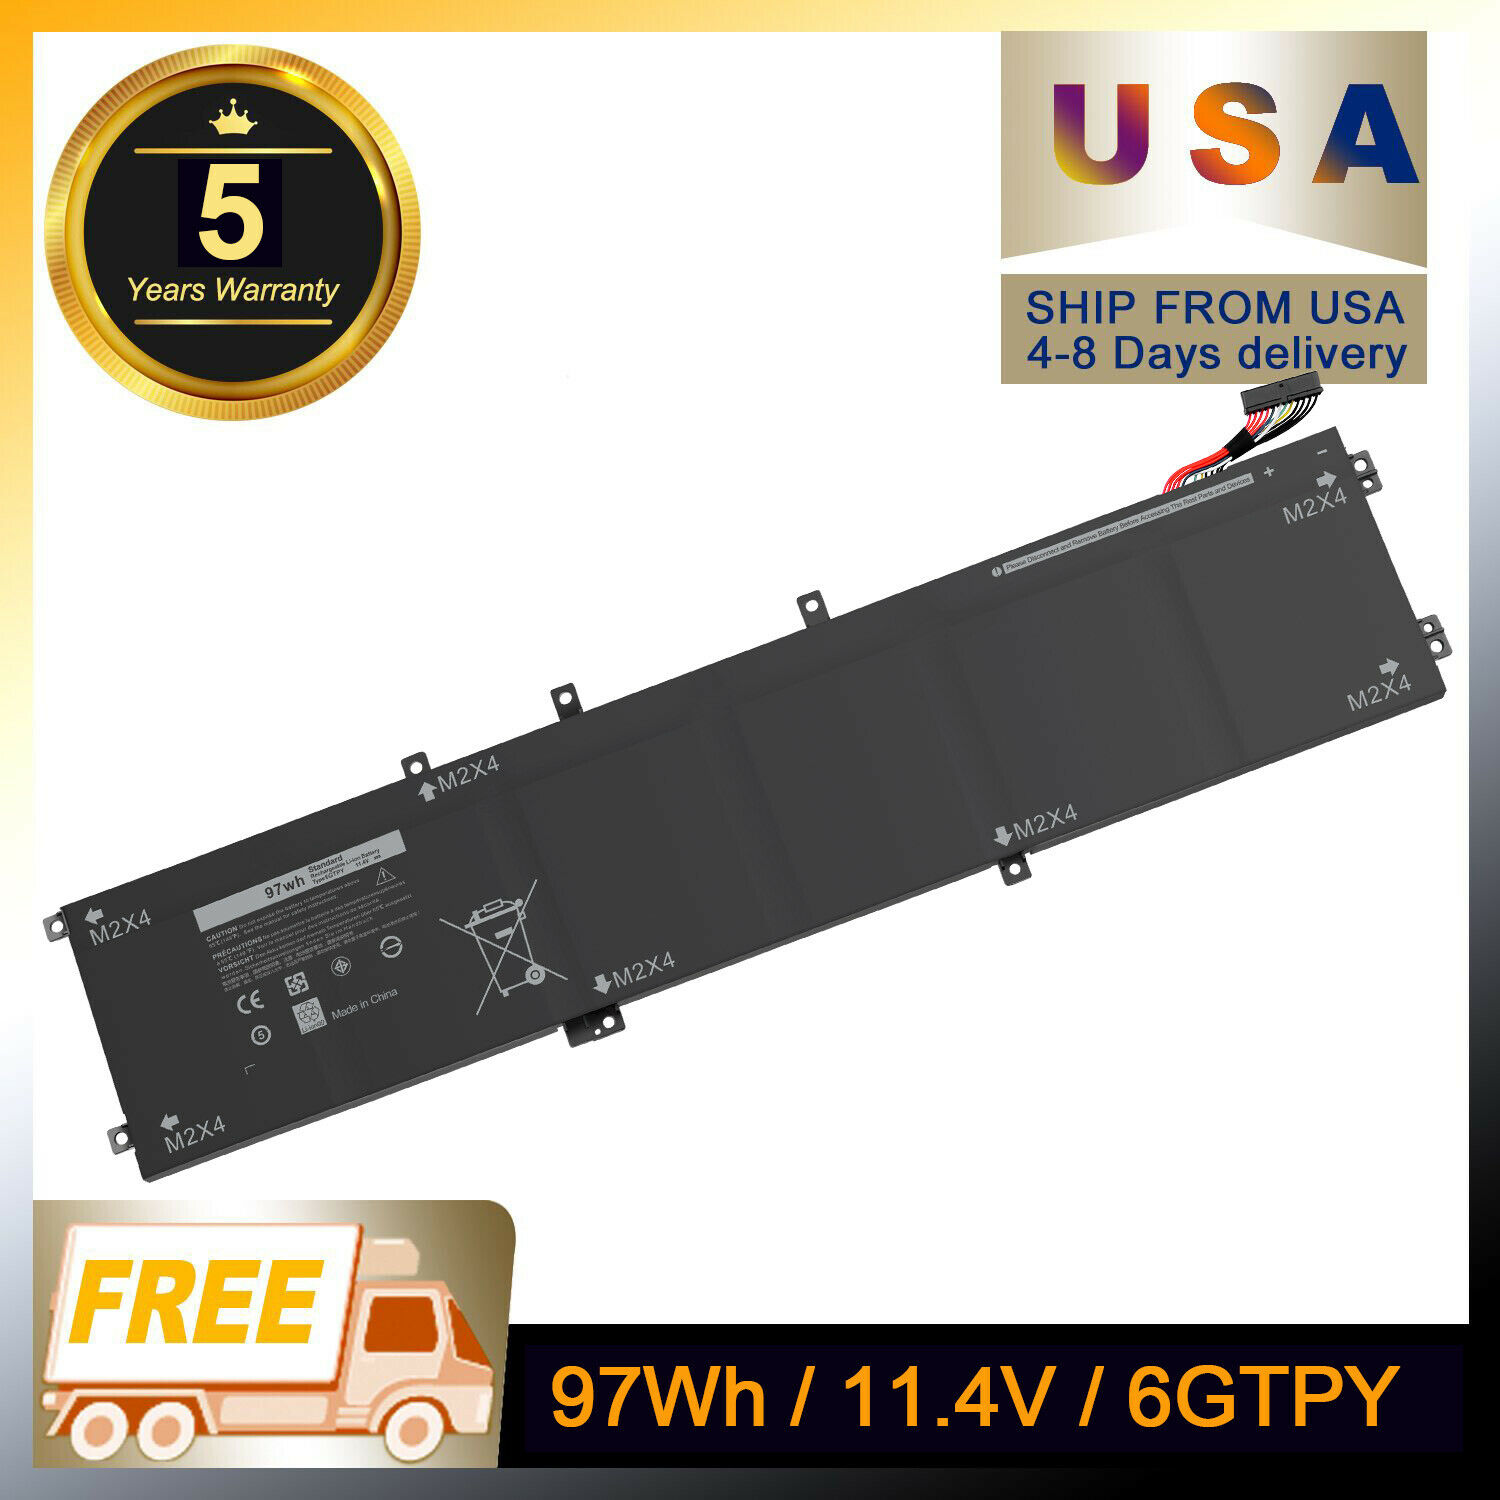 6GTPY Laptop Battery 97Wh For Dell XPS 15 9560 9550 Precision 5510 I7-7700HQ - $45.88